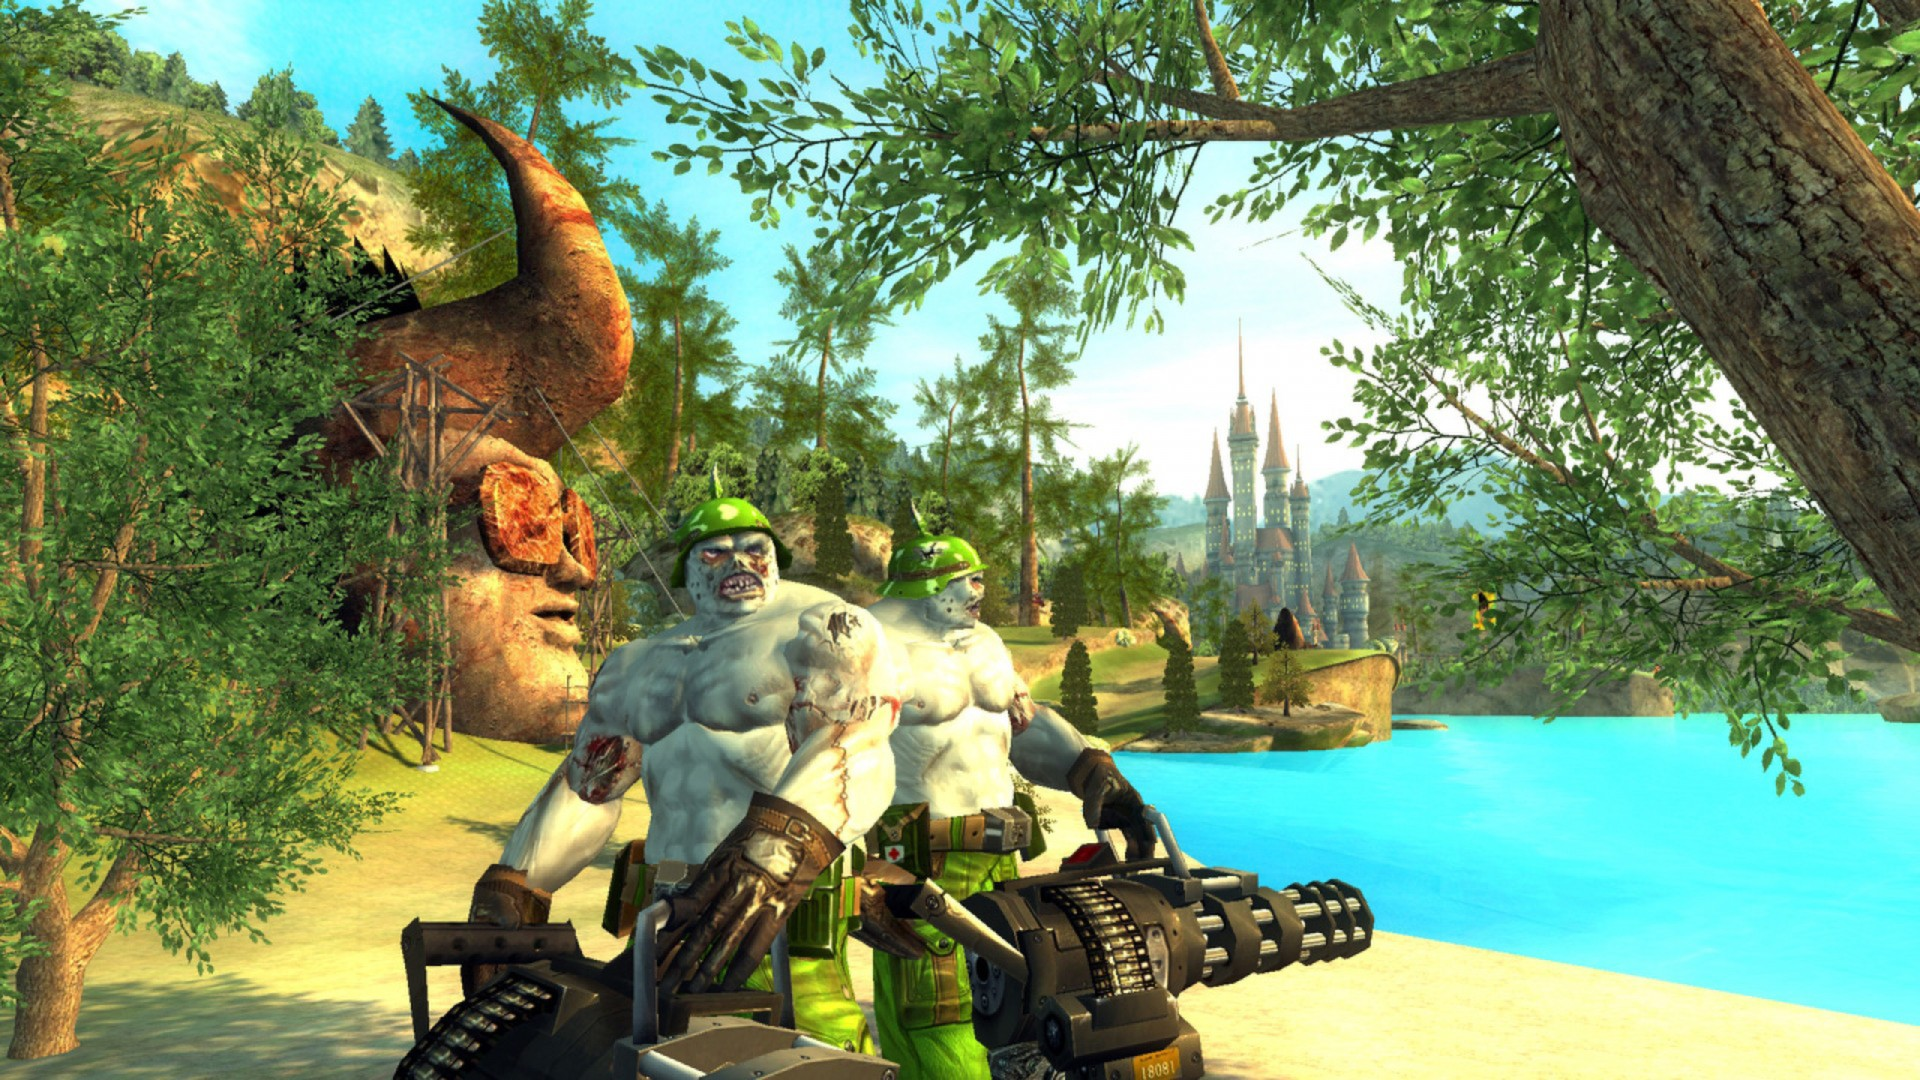 Serious Sam 2 Free Download image 2